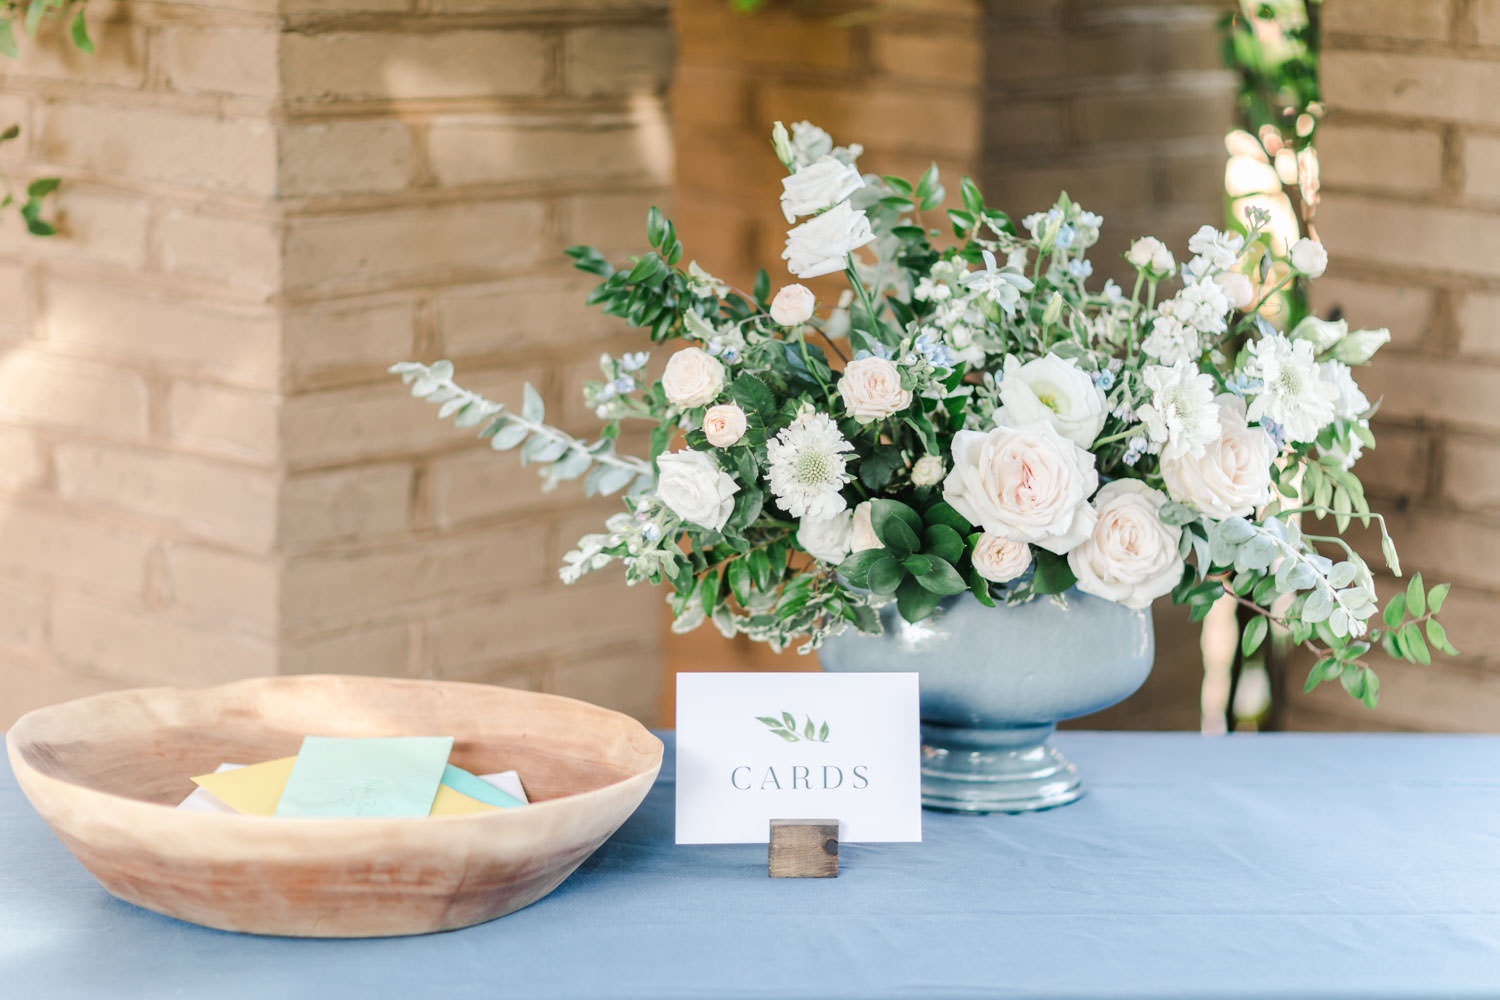 Gift table with white peach and green floral arrangement and blue linen, Cavin Elizabeth Photography